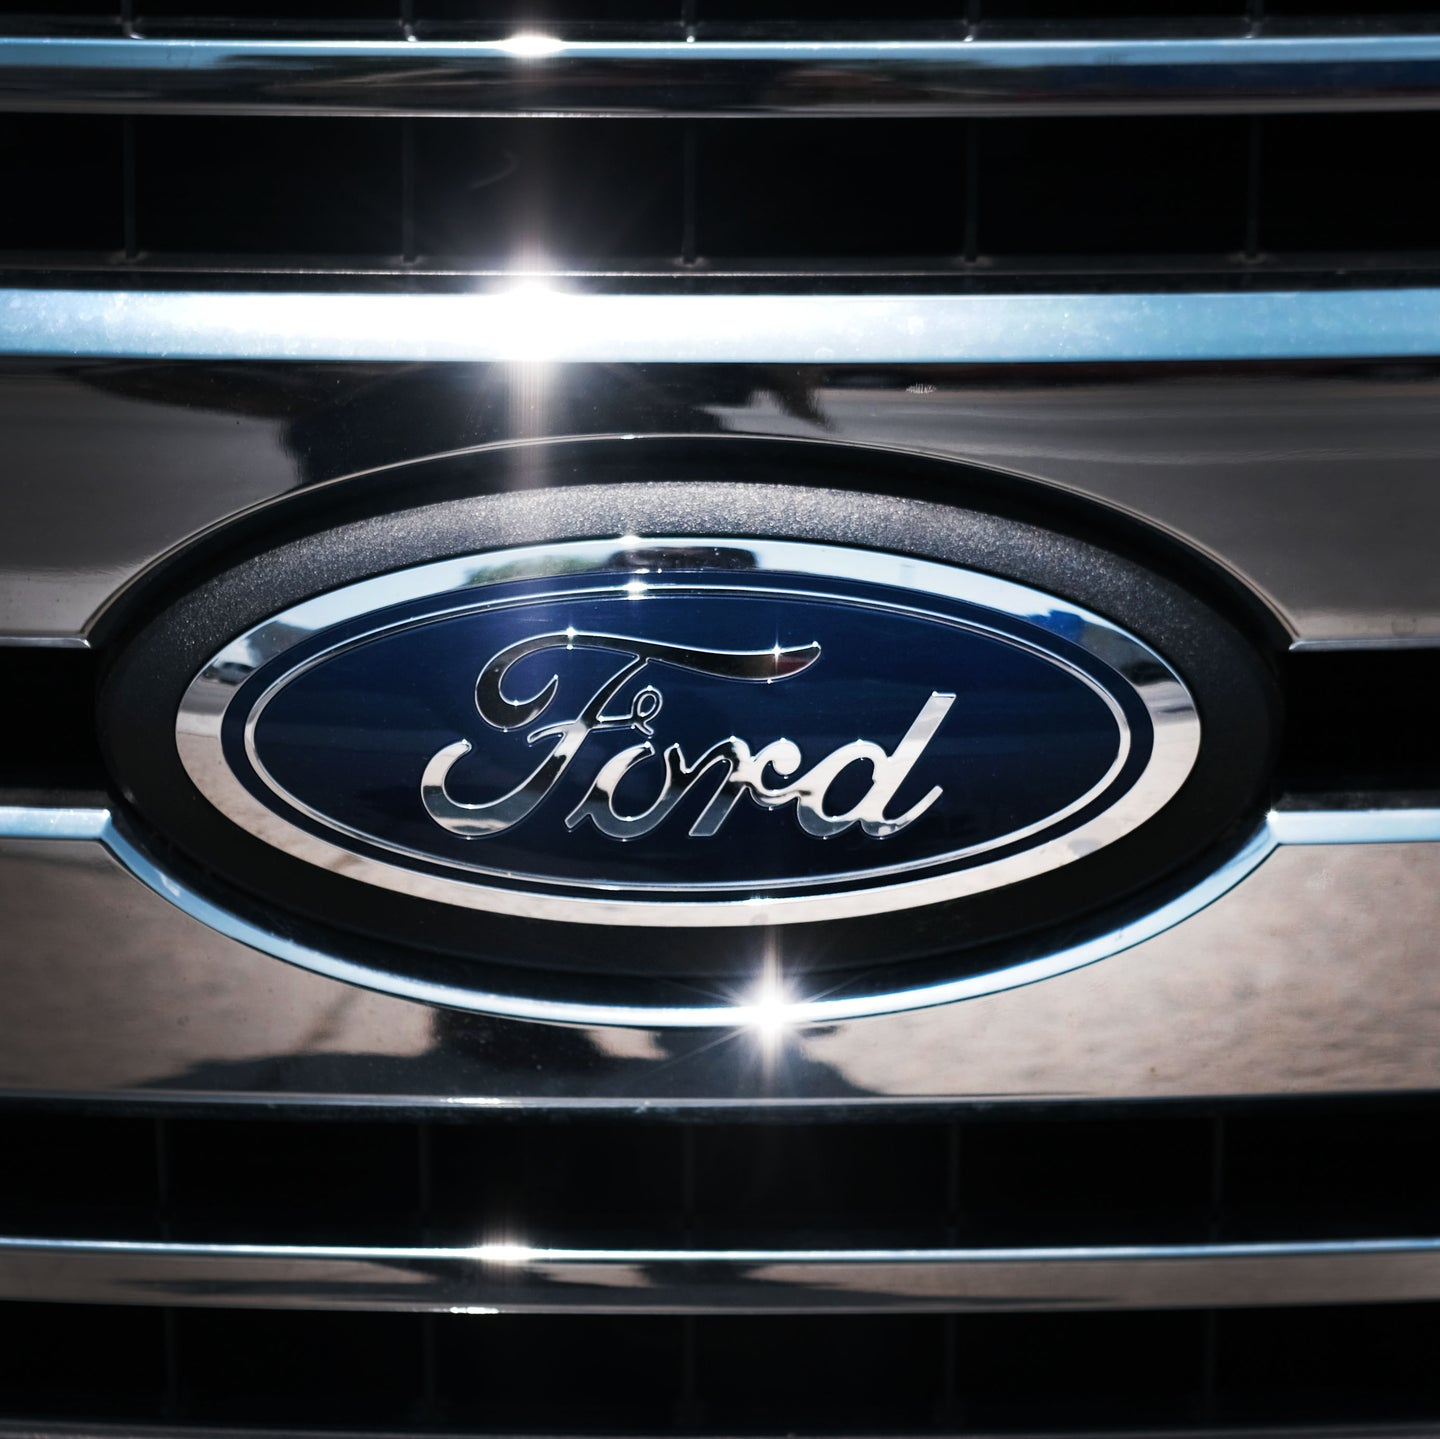 Ford badge on a front grill